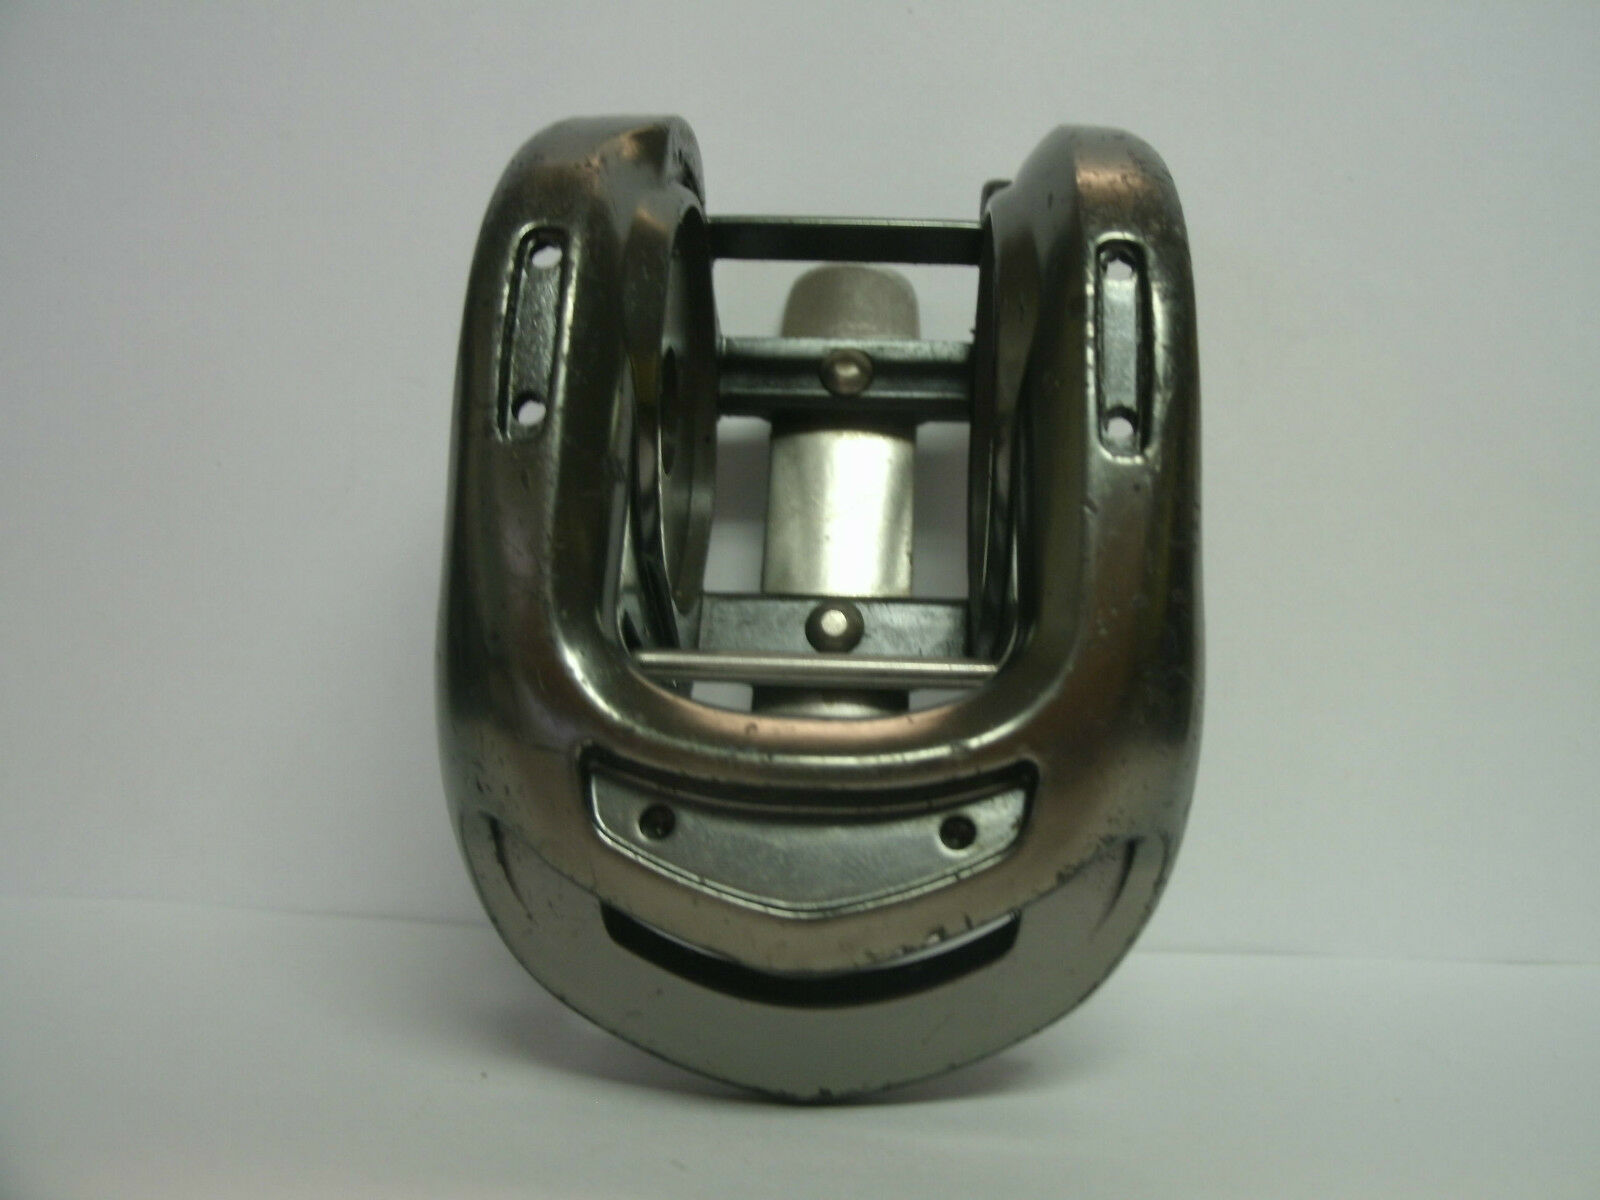 USED SHIMANO BAITCASTING REEL PART - Chronarch CH 100B - Frame Assembly - Lot H